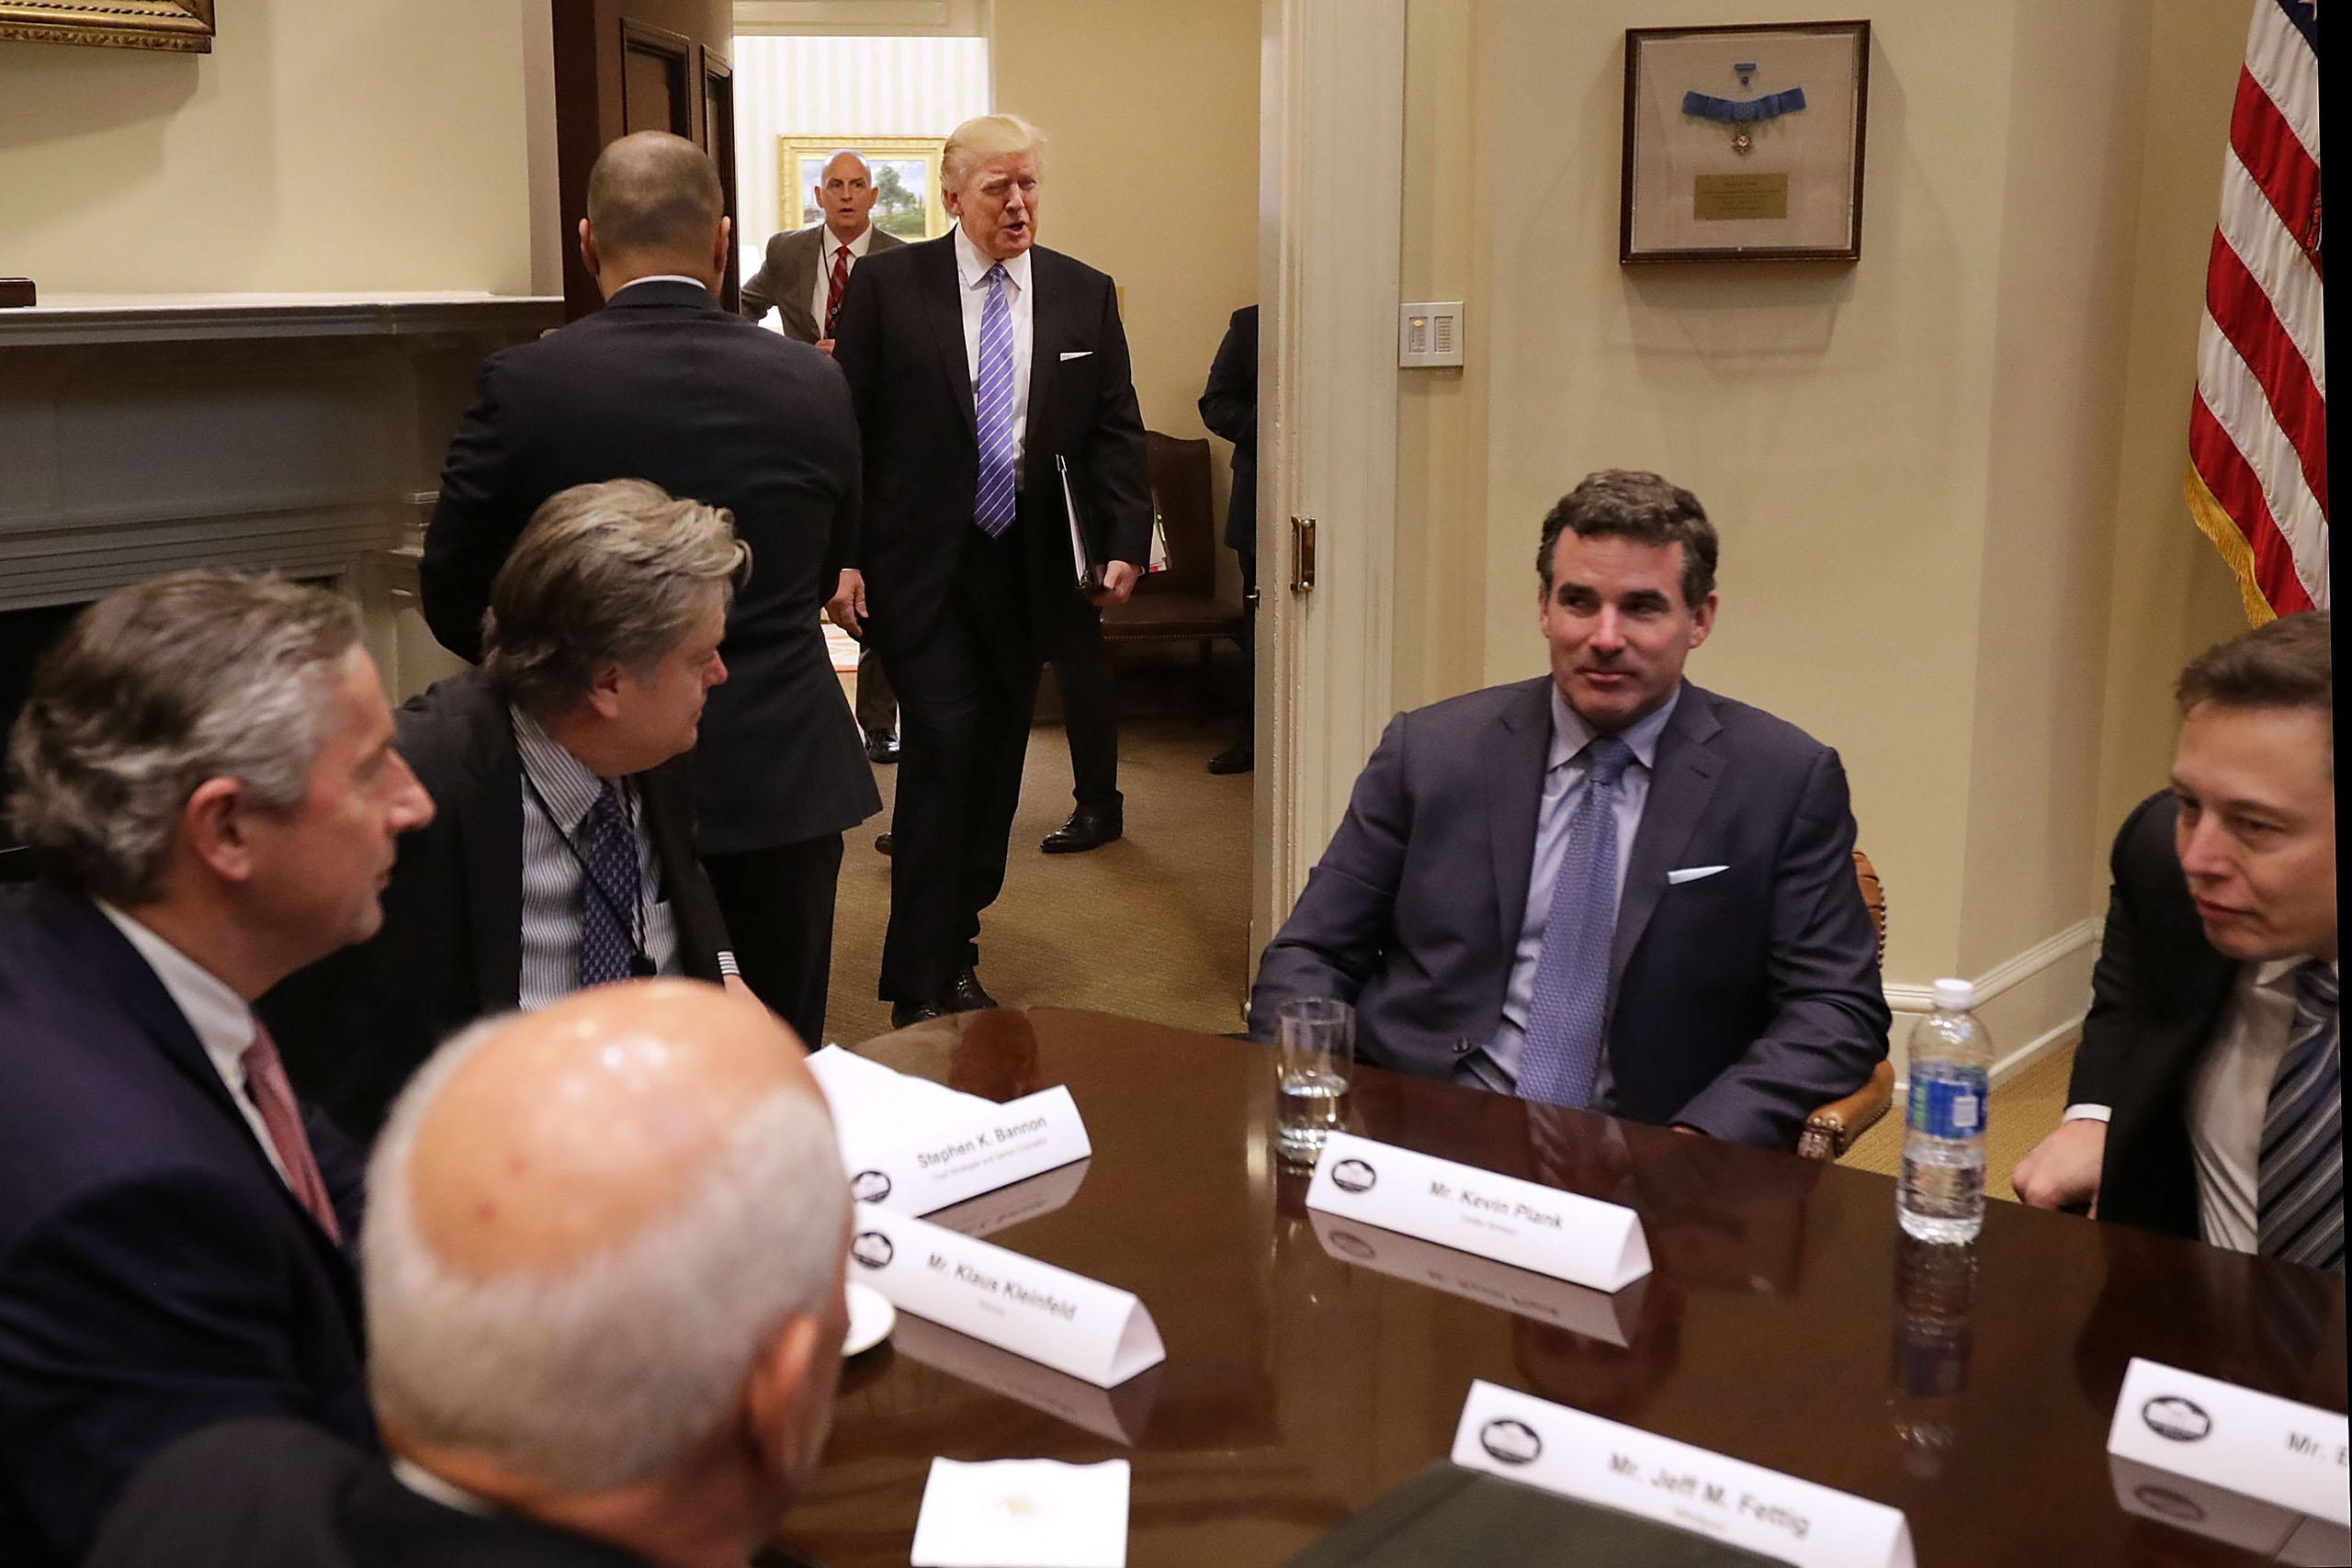 President Donald Trump walks into the Roosevelt Room for a meeting with business leaders at the White House, on Jan. 23, 2017.